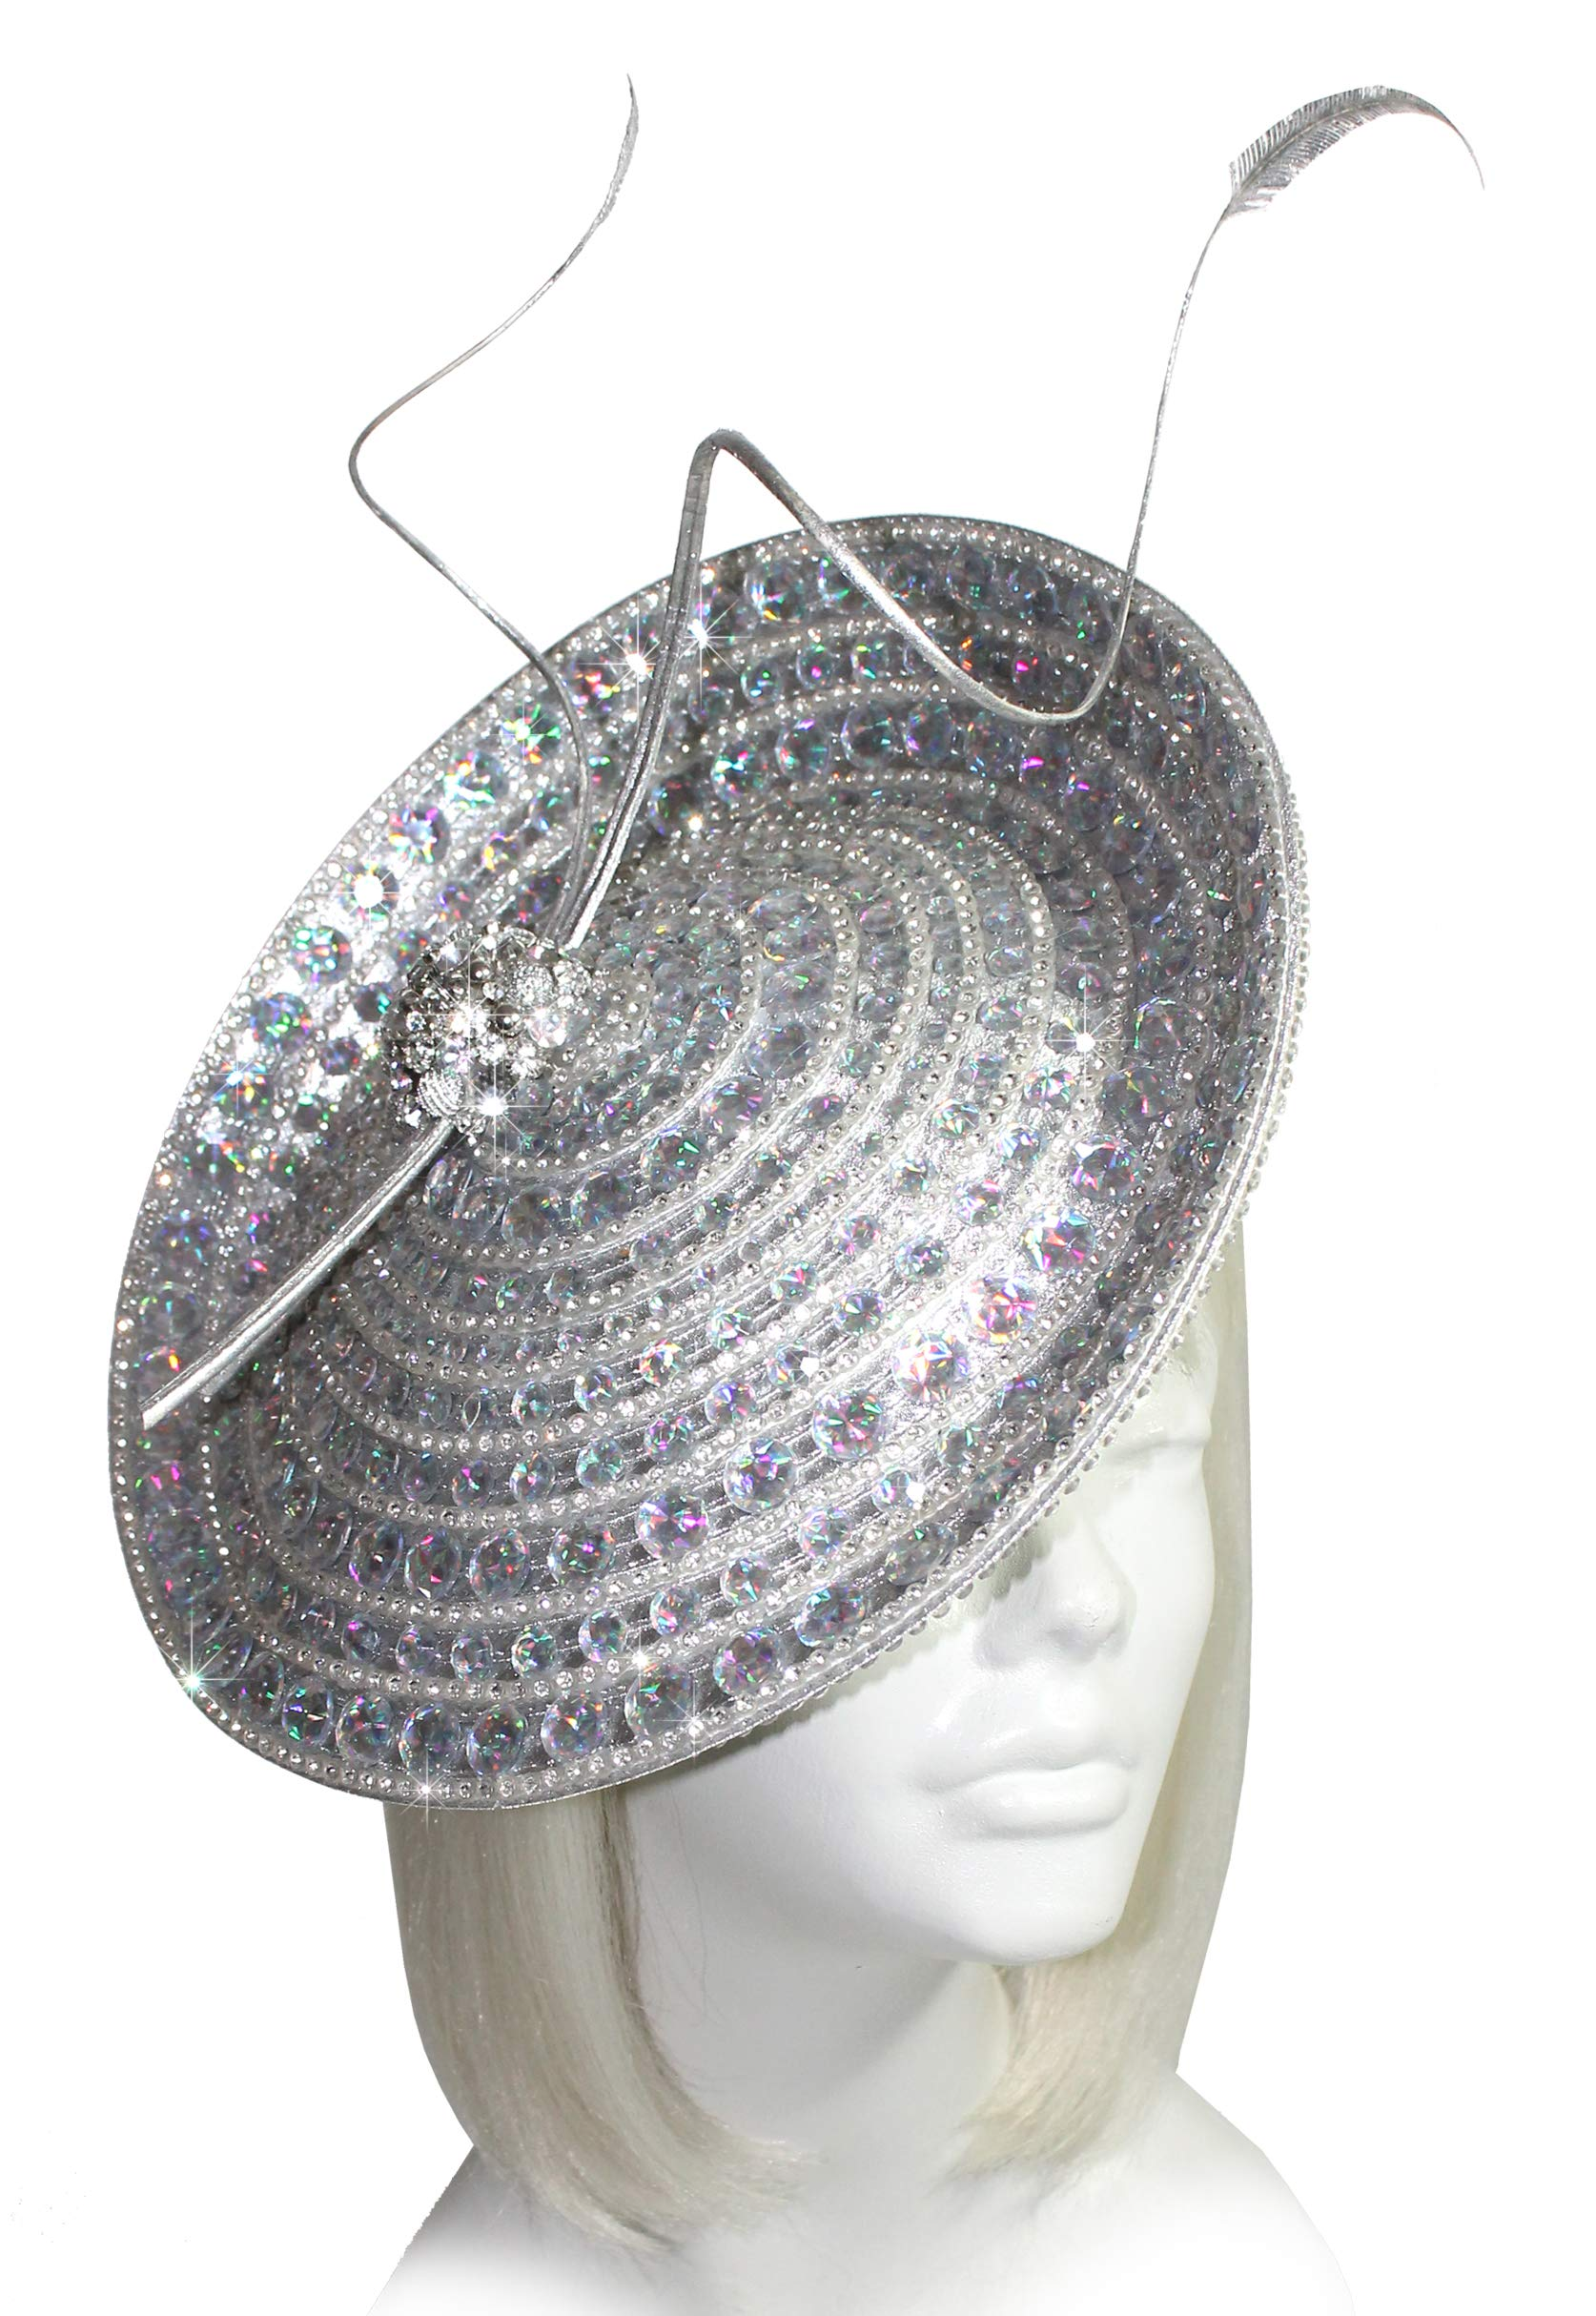 Mr. Song Millinery Kentucky Derby All-Season Cyrstal Rhinestone Profile Headband Fascinator - AF107 Silver Aurora Borealis